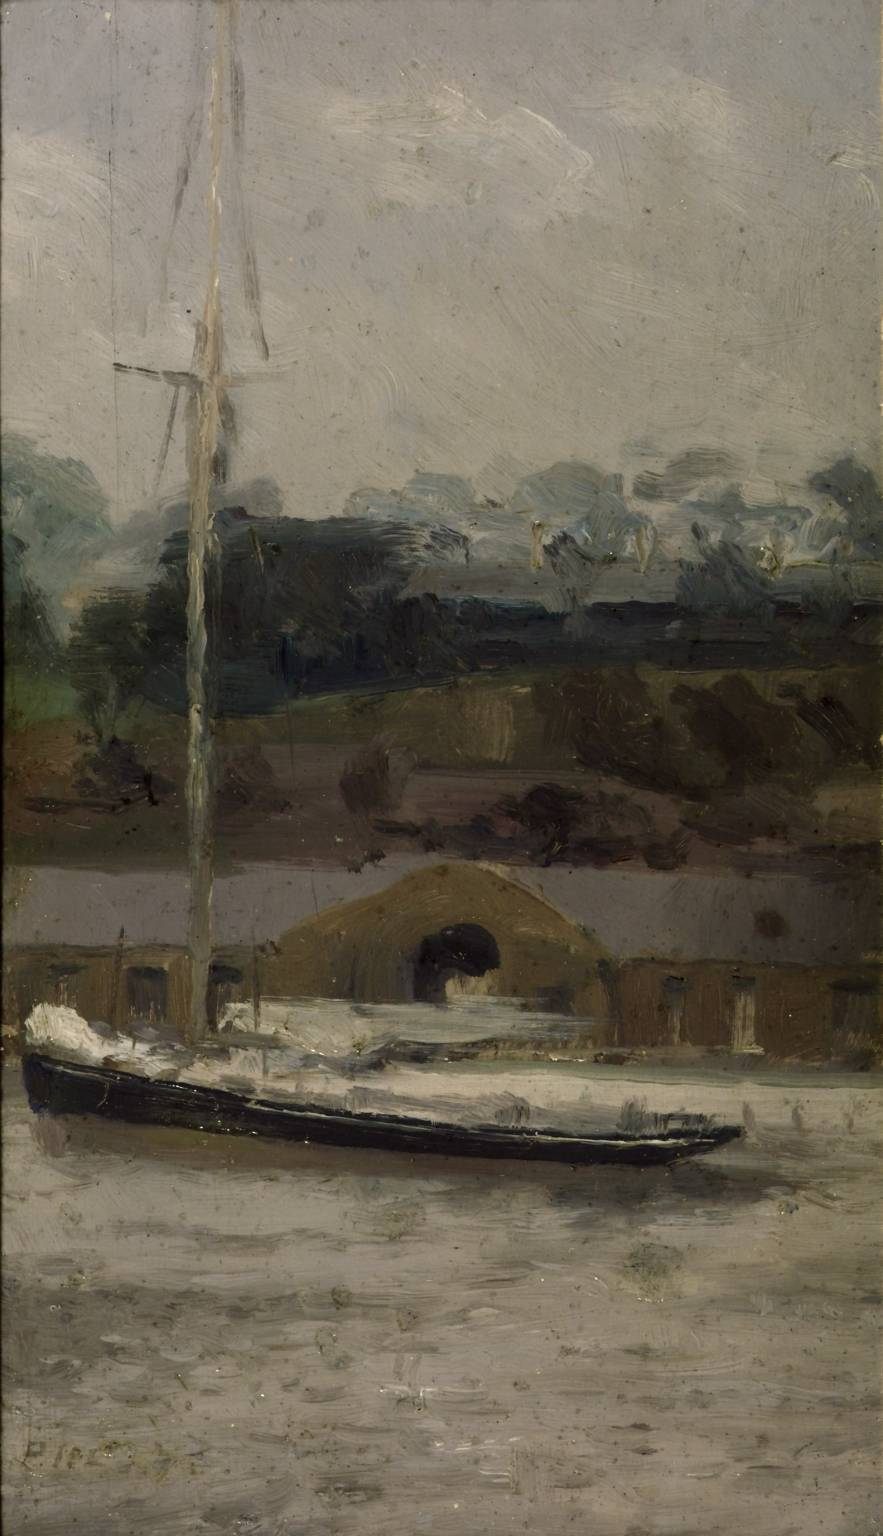 A Yacht off Sheerness circa 1896 by Paul Maitland 1863-1909